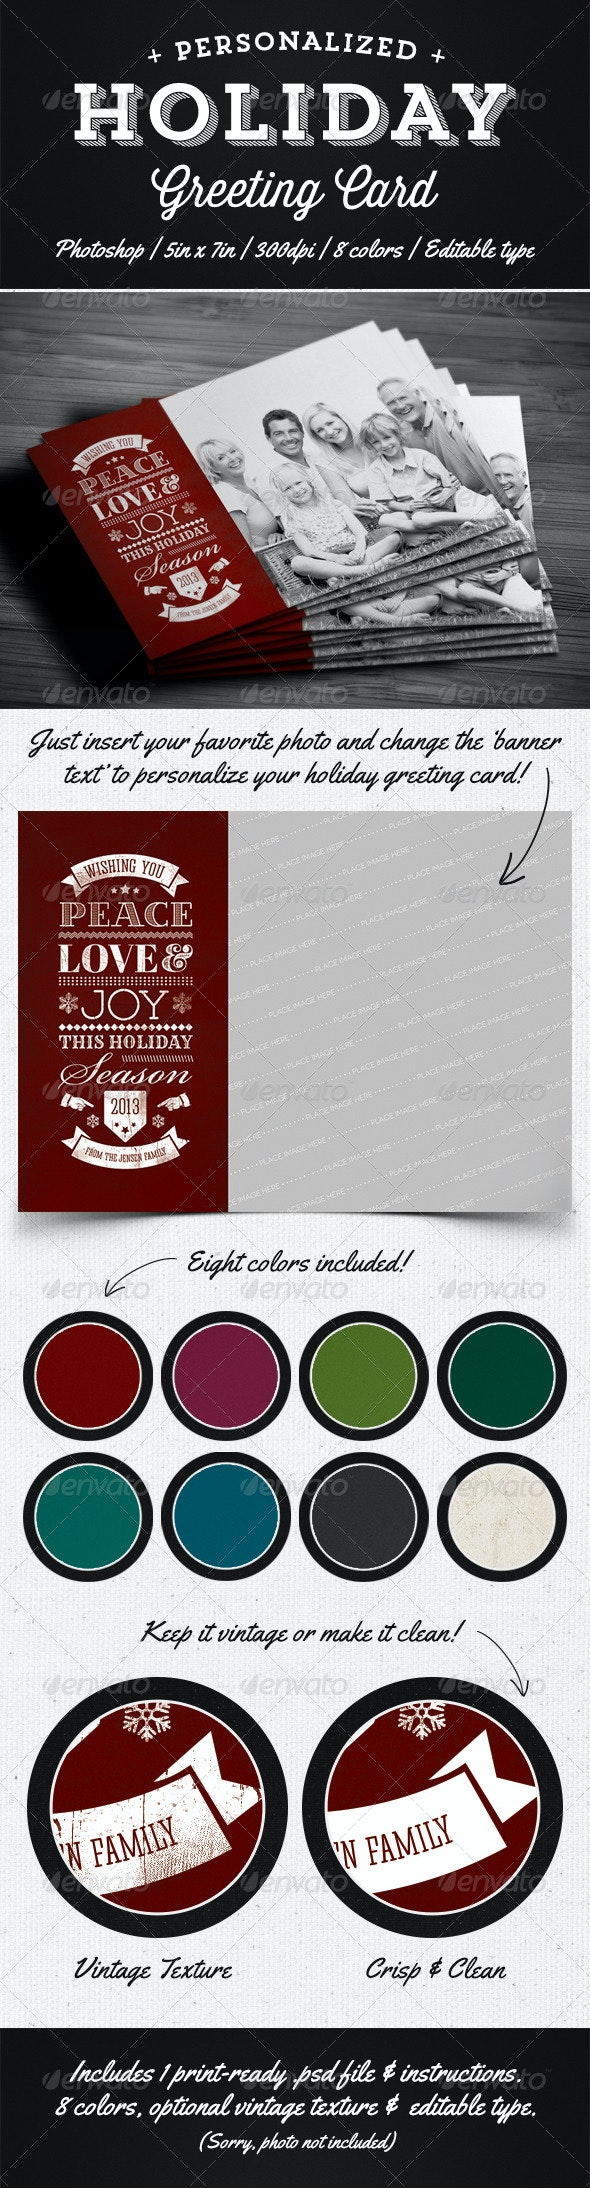 Personalized Holiday Greeting Card - Holiday Greeting Cards